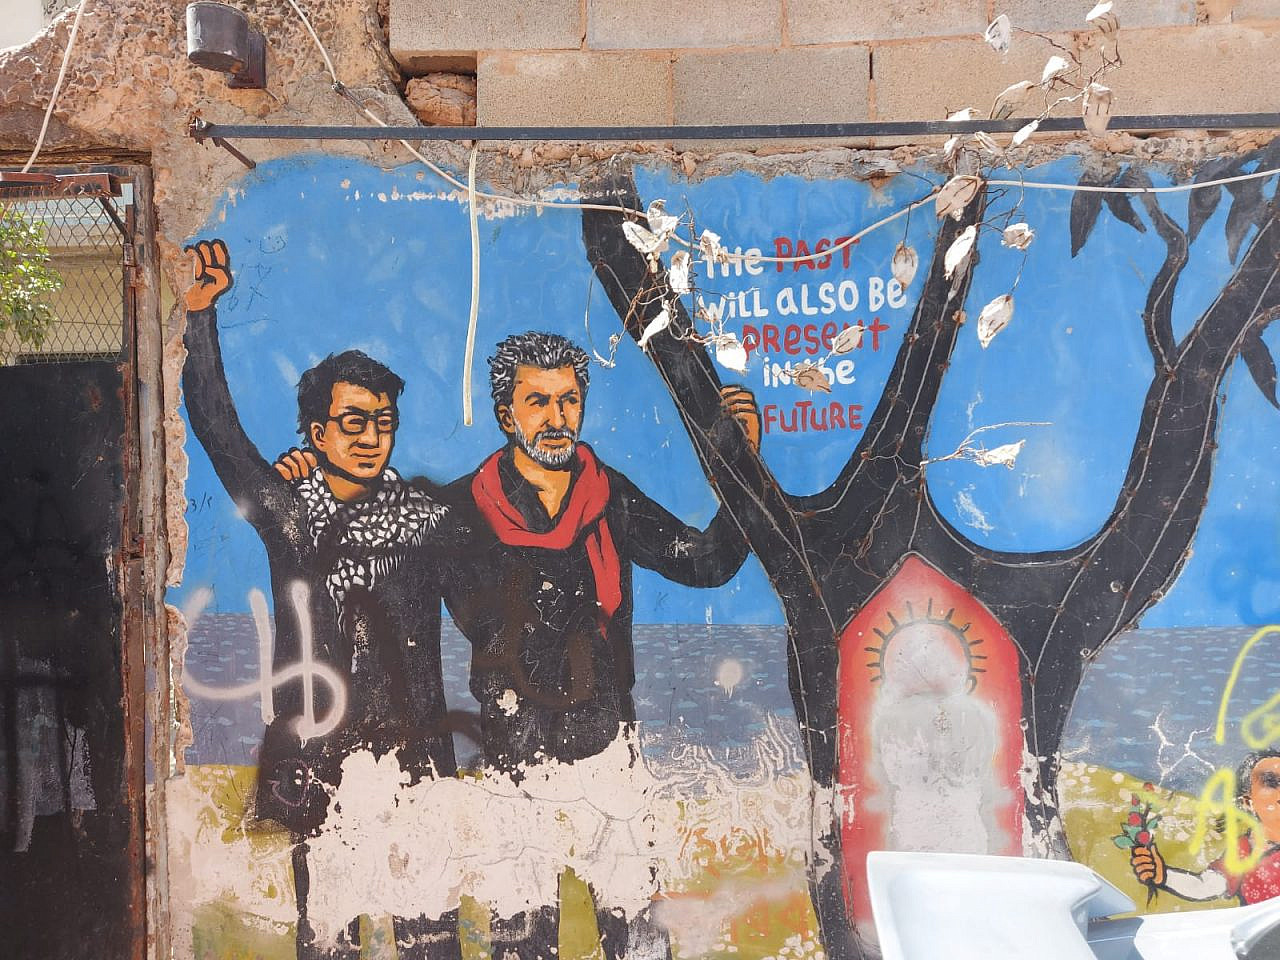 Graffiti on one of the walls of the Freedom Theater in Jenin, the occupied West Bank. (Yuval Abraham)